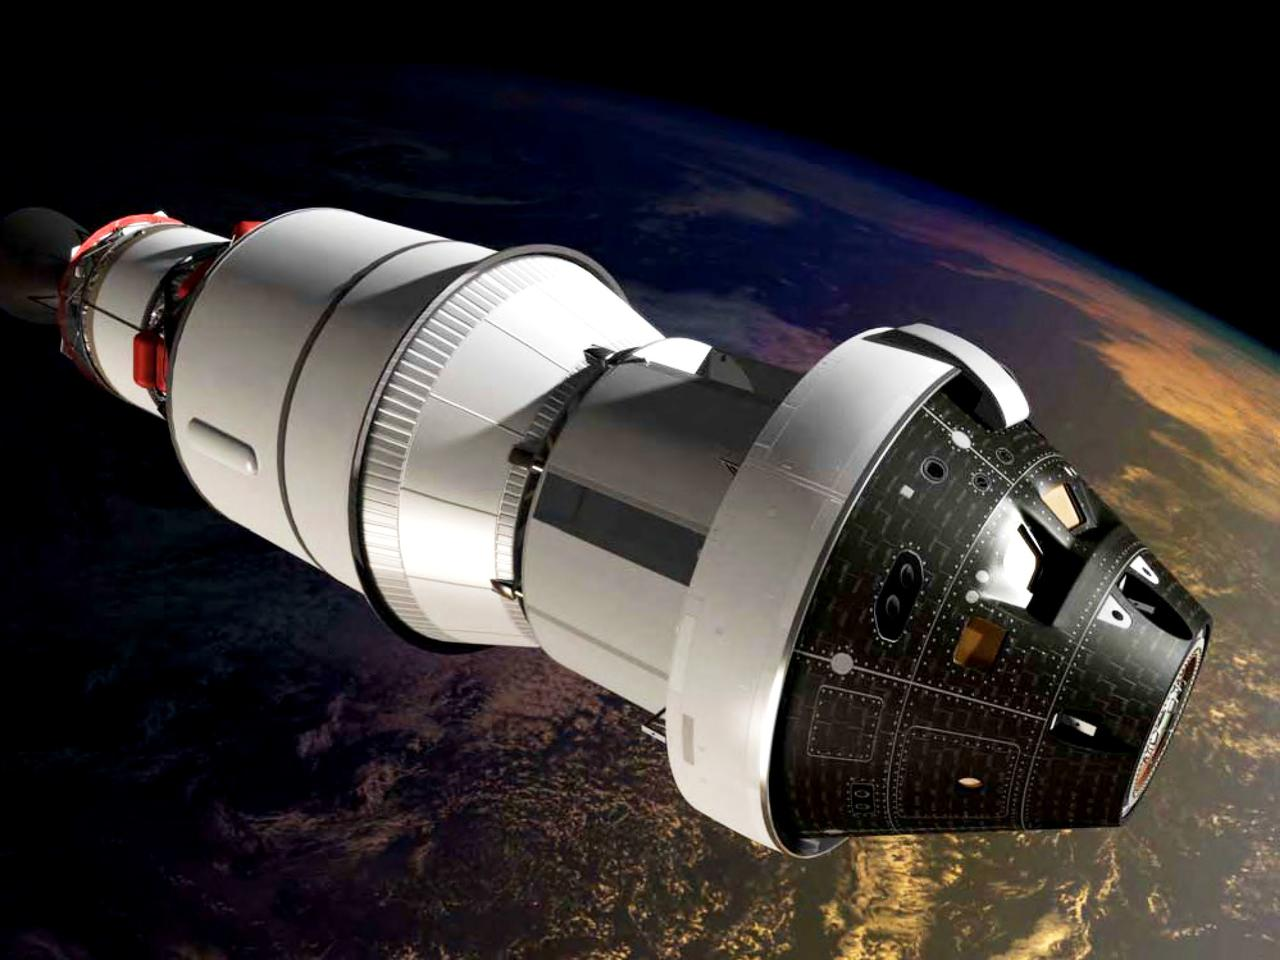 Artist's impression of Orion in orbit during its maiden test flight (Image: NASA)